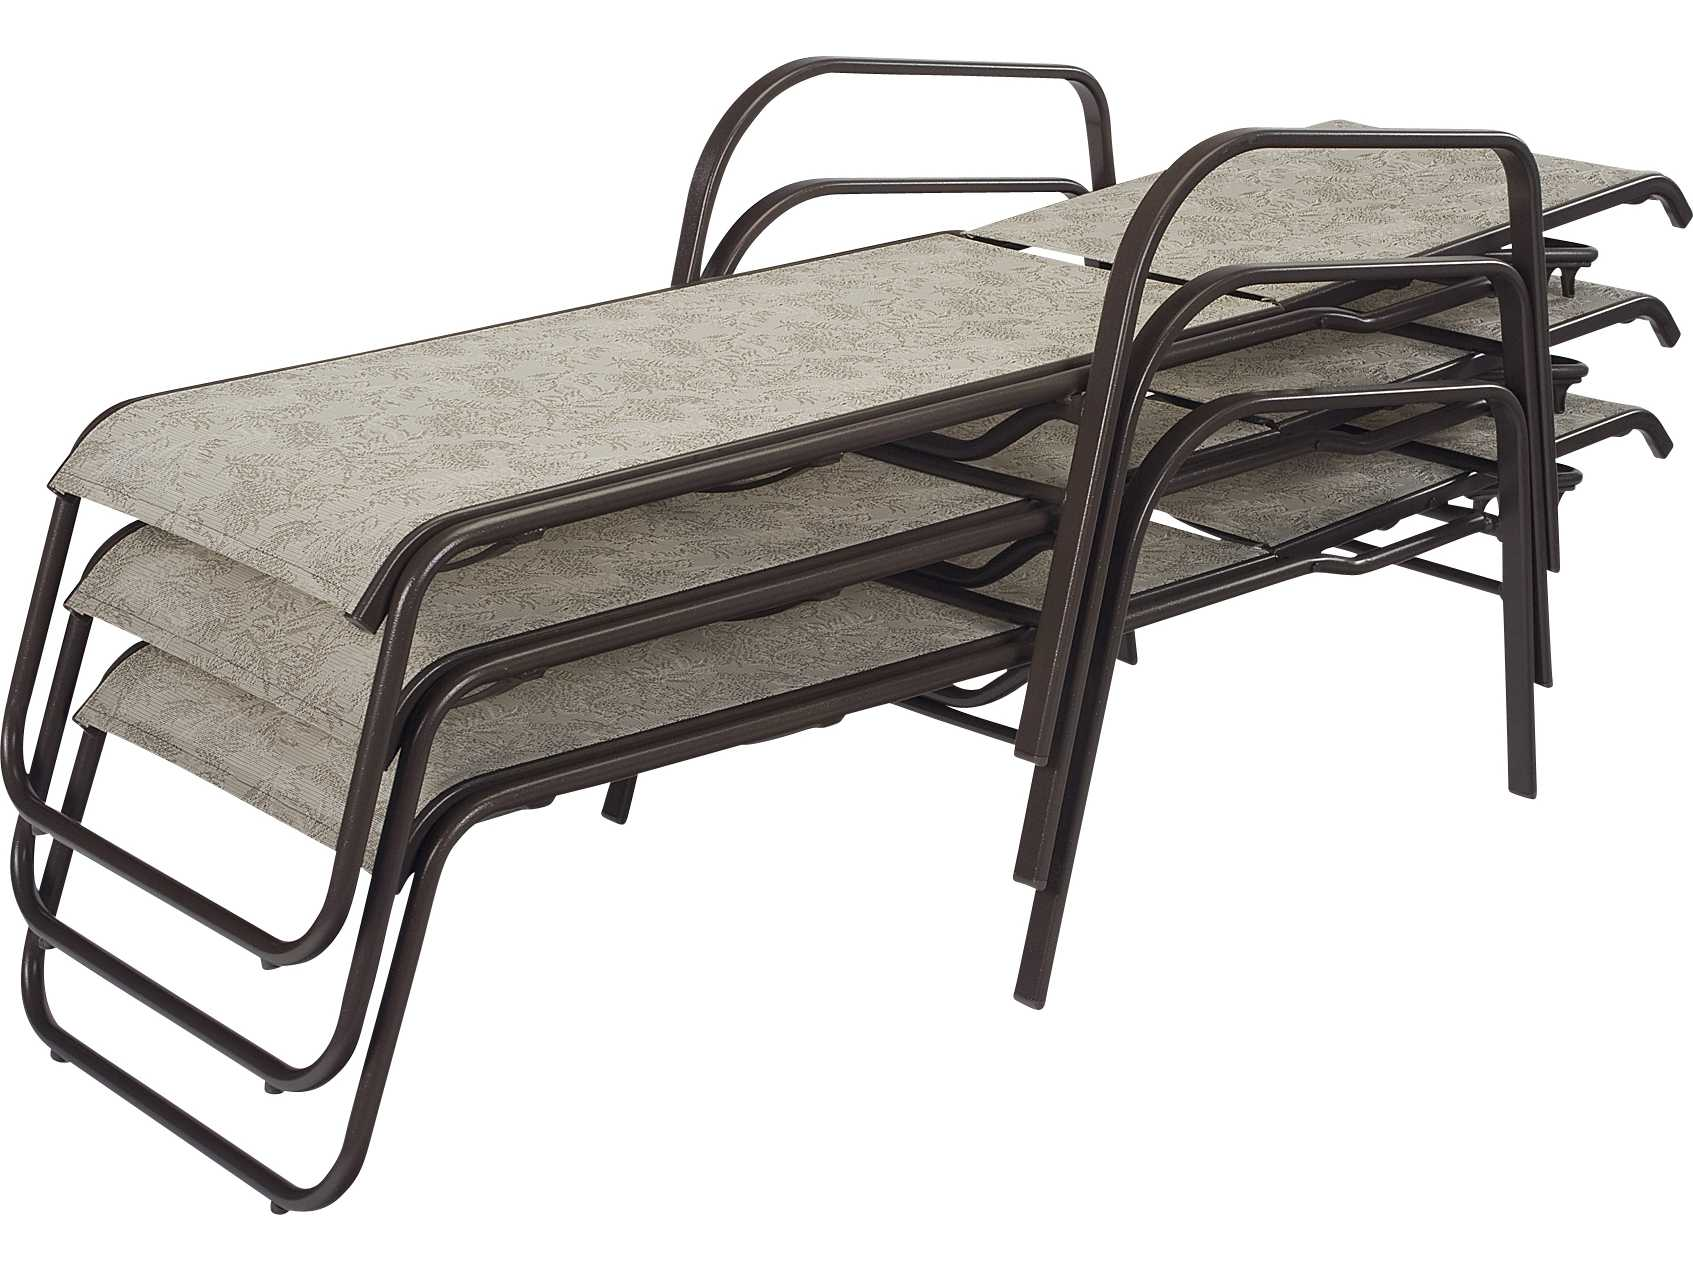 Windward Design Group Ocean Breeze Sling Aluminum Chaise Lounge